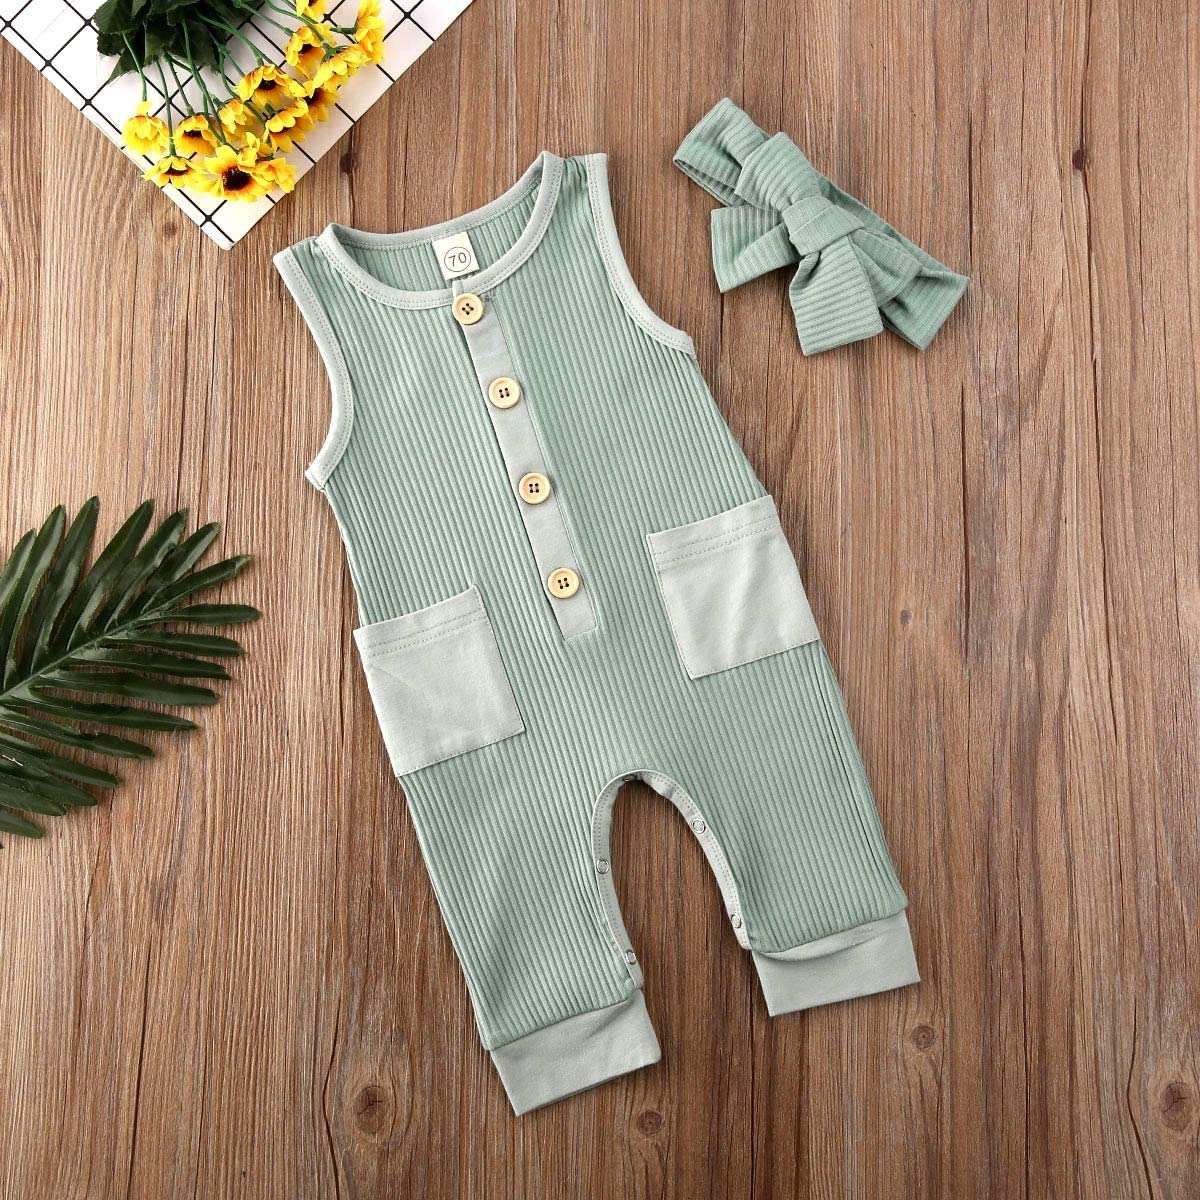 iddolaka Newborn Summer Baby Boy Girl Romper Bodysuit Jumpsuit Playsuit One Piece Outfit Clothes